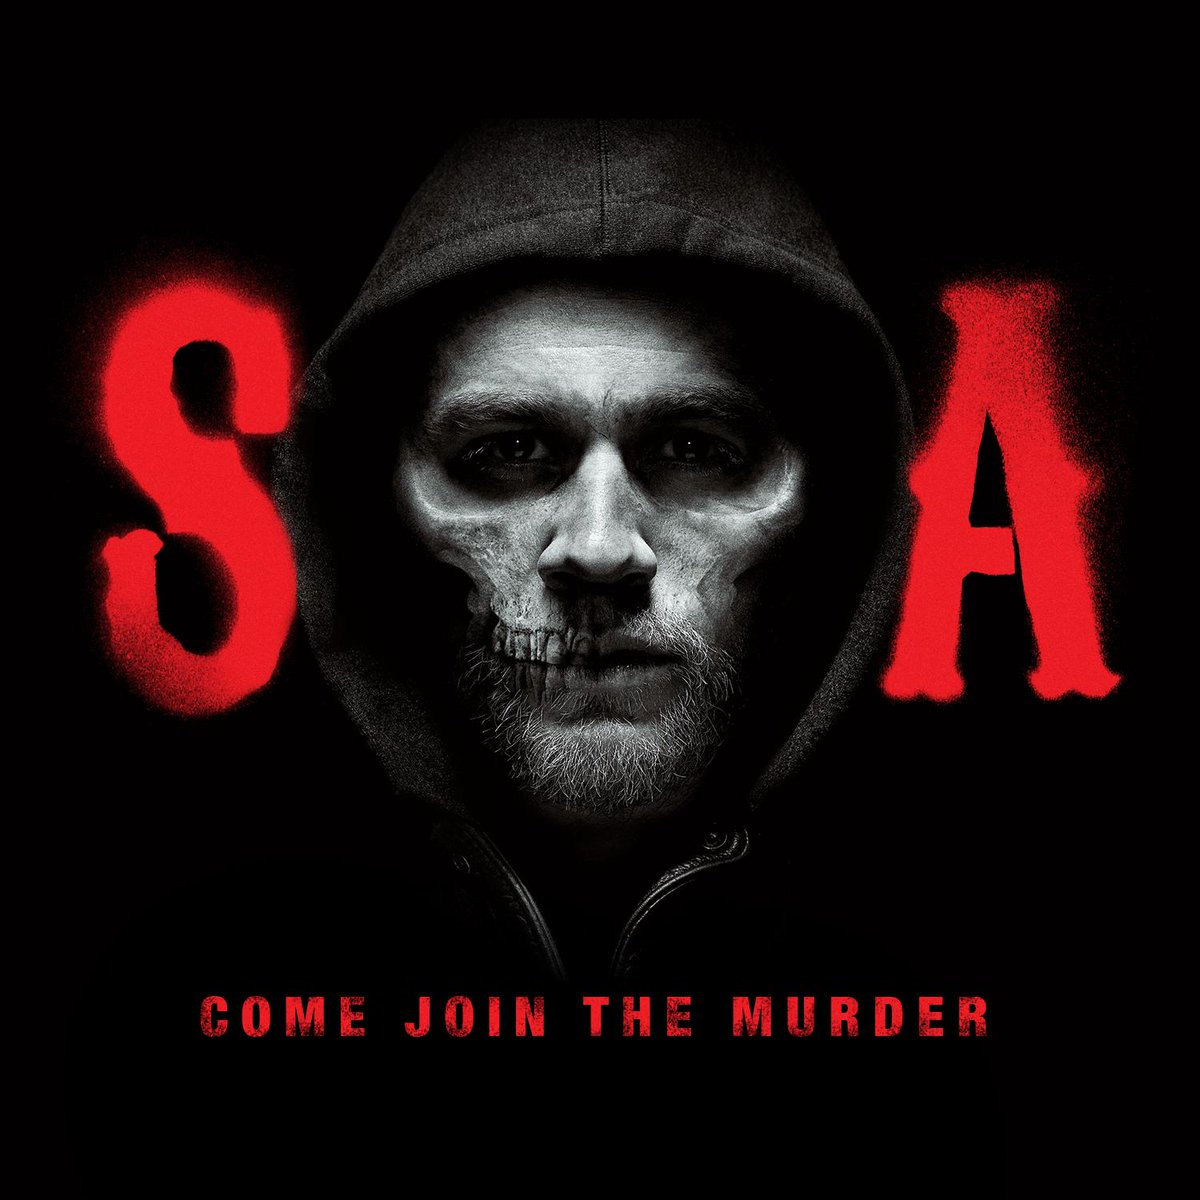 Check out @RollingStone's article and exclusive stream of Come Join The Murder. #SonsOfAnarchy http://t.co/jHuF4SJnyO http://t.co/XKBeTTh4KI